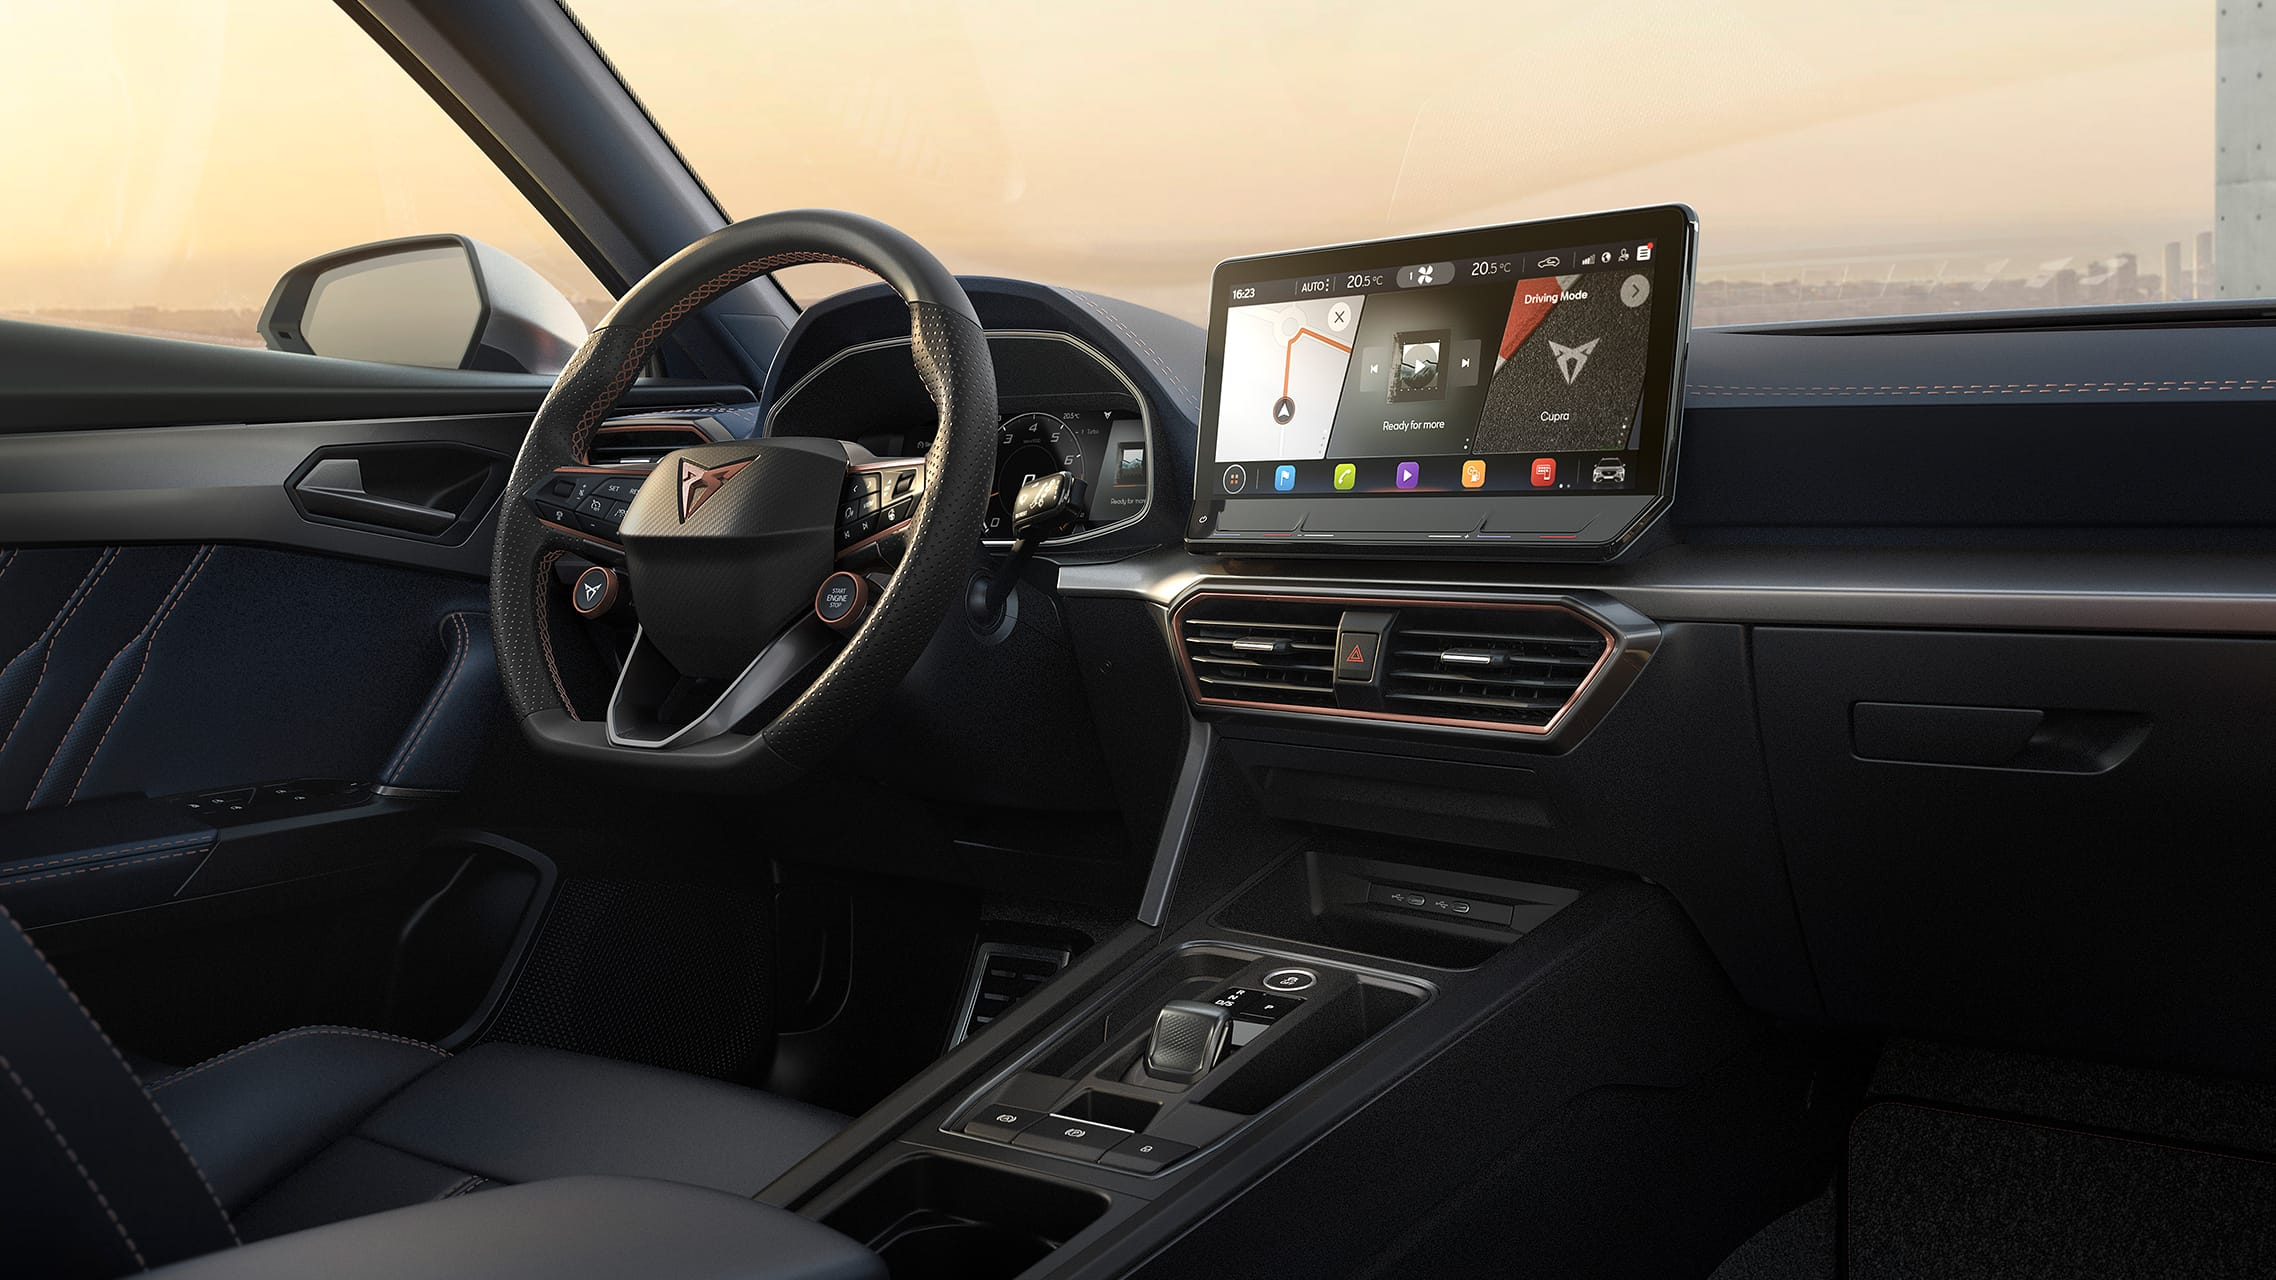 new cupra formentor with infotainment technology for live traffic updates and spotify streaming